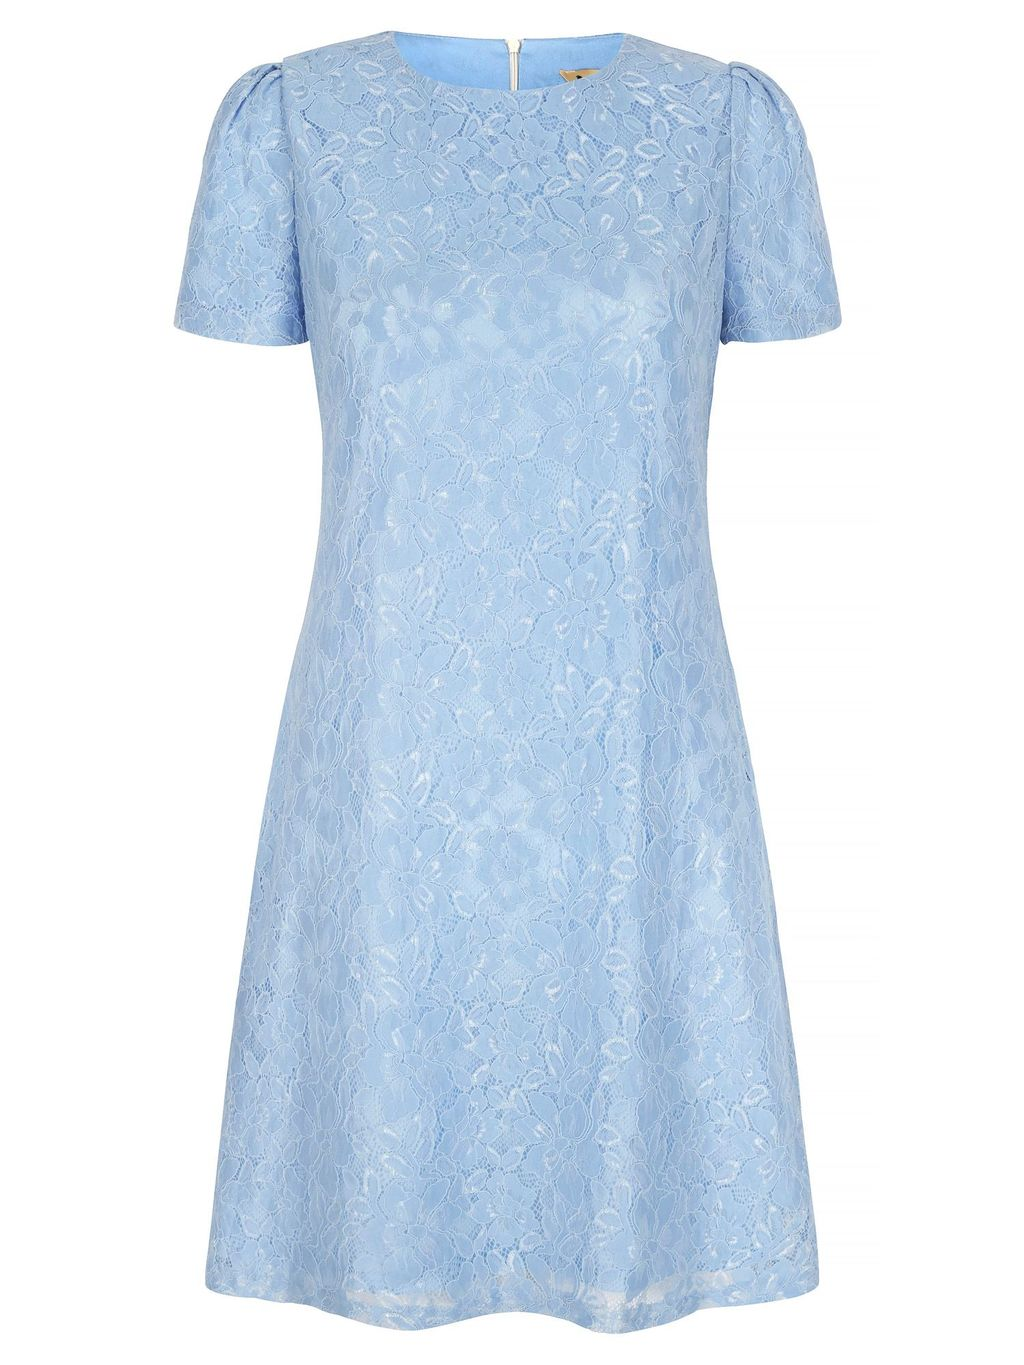 Lace Occasion Dress, Blue - style: shift; predominant colour: pale blue; occasions: evening; length: just above the knee; fit: body skimming; fibres: polyester/polyamide - 100%; neckline: crew; sleeve length: short sleeve; sleeve style: standard; texture group: lace; pattern type: fabric; pattern size: standard; pattern: patterned/print; season: s/s 2016; wardrobe: event